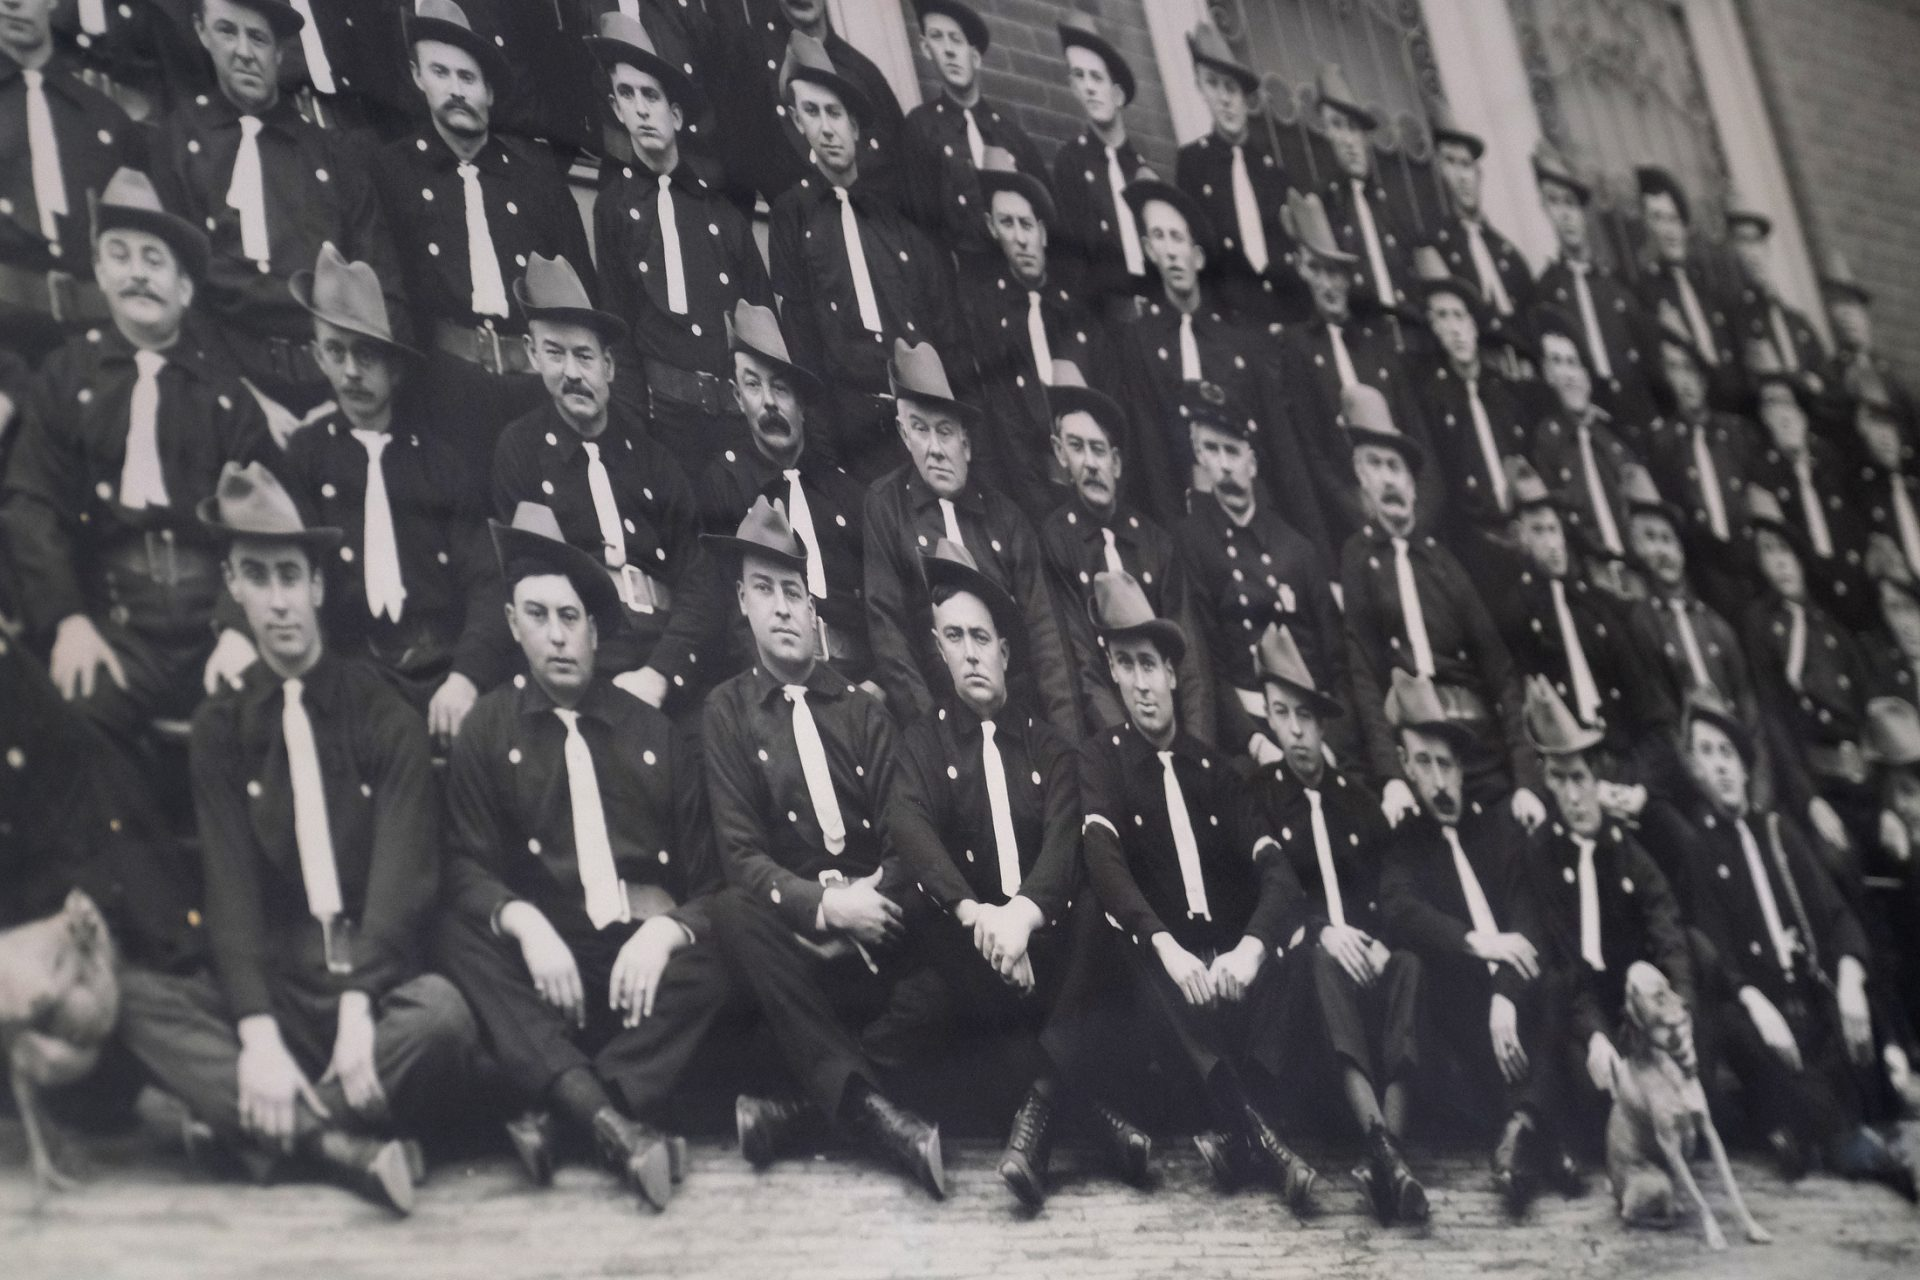 A photograph of the company of firefighters taken in the early 20th century is displayed Jan. 16, 2020, at Good Will Fire Company No. 4 in Pottsville, Pennsylvania.